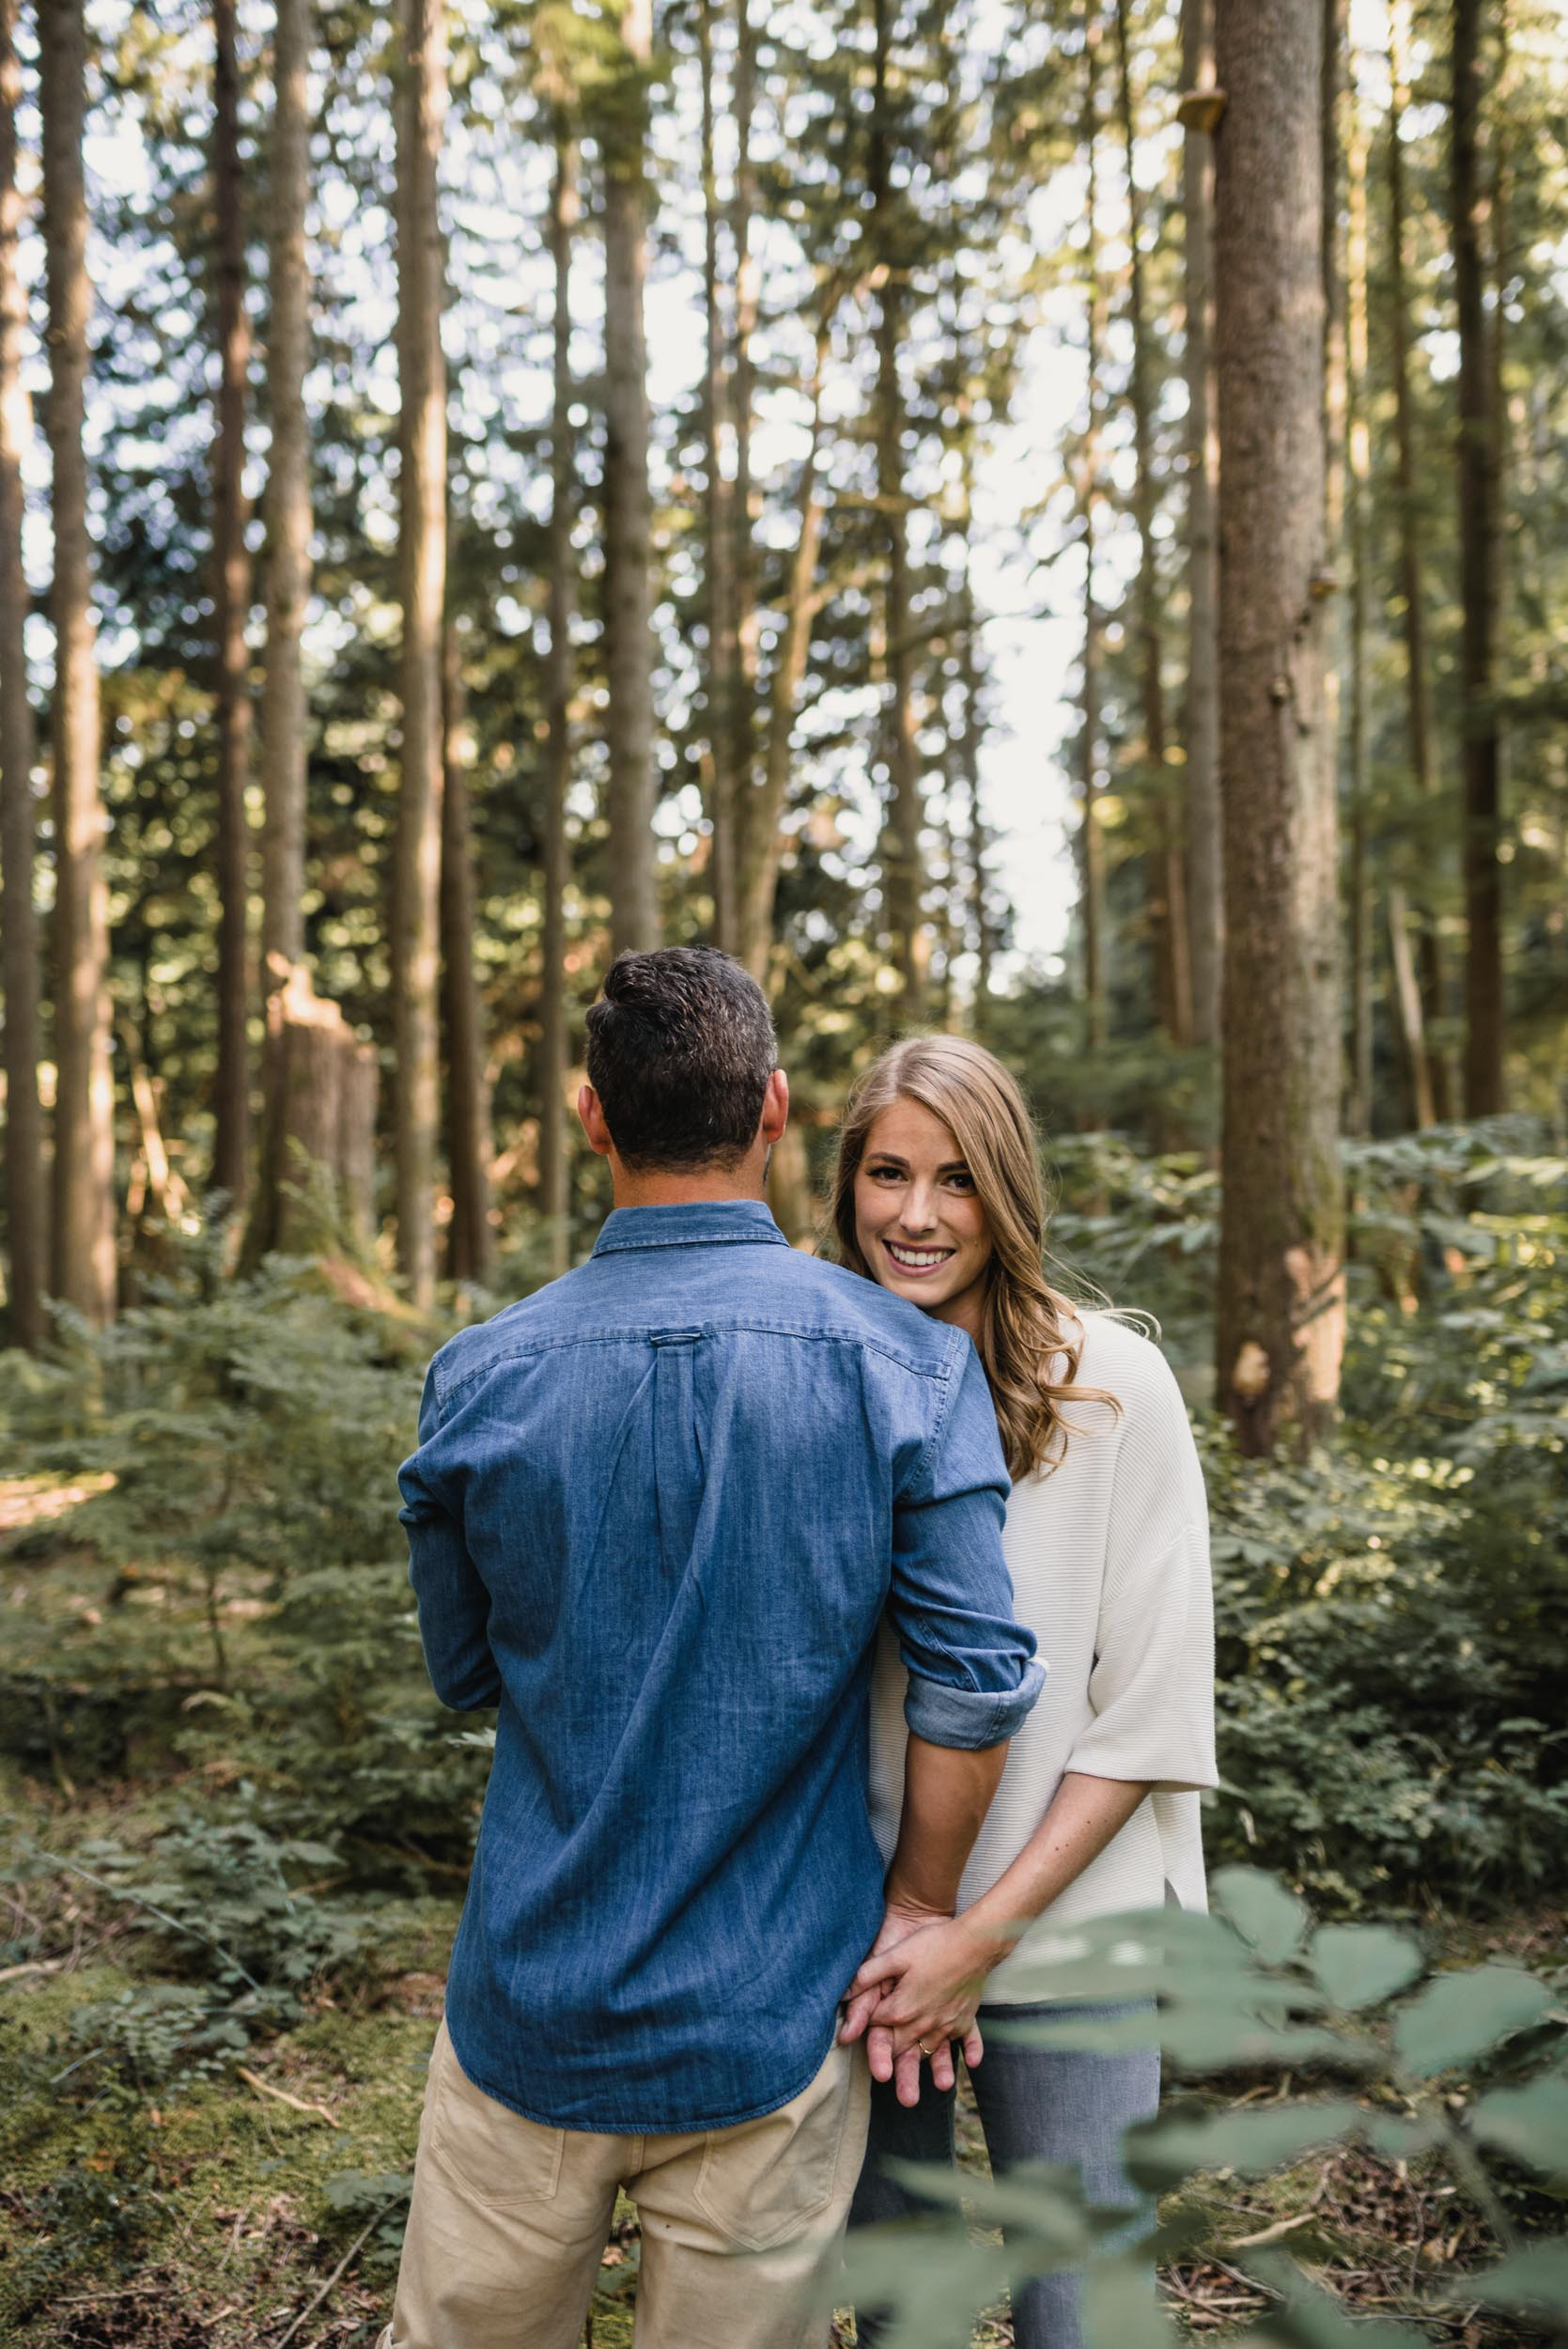 LukeMiklerPhoto_Engagements-26.jpg